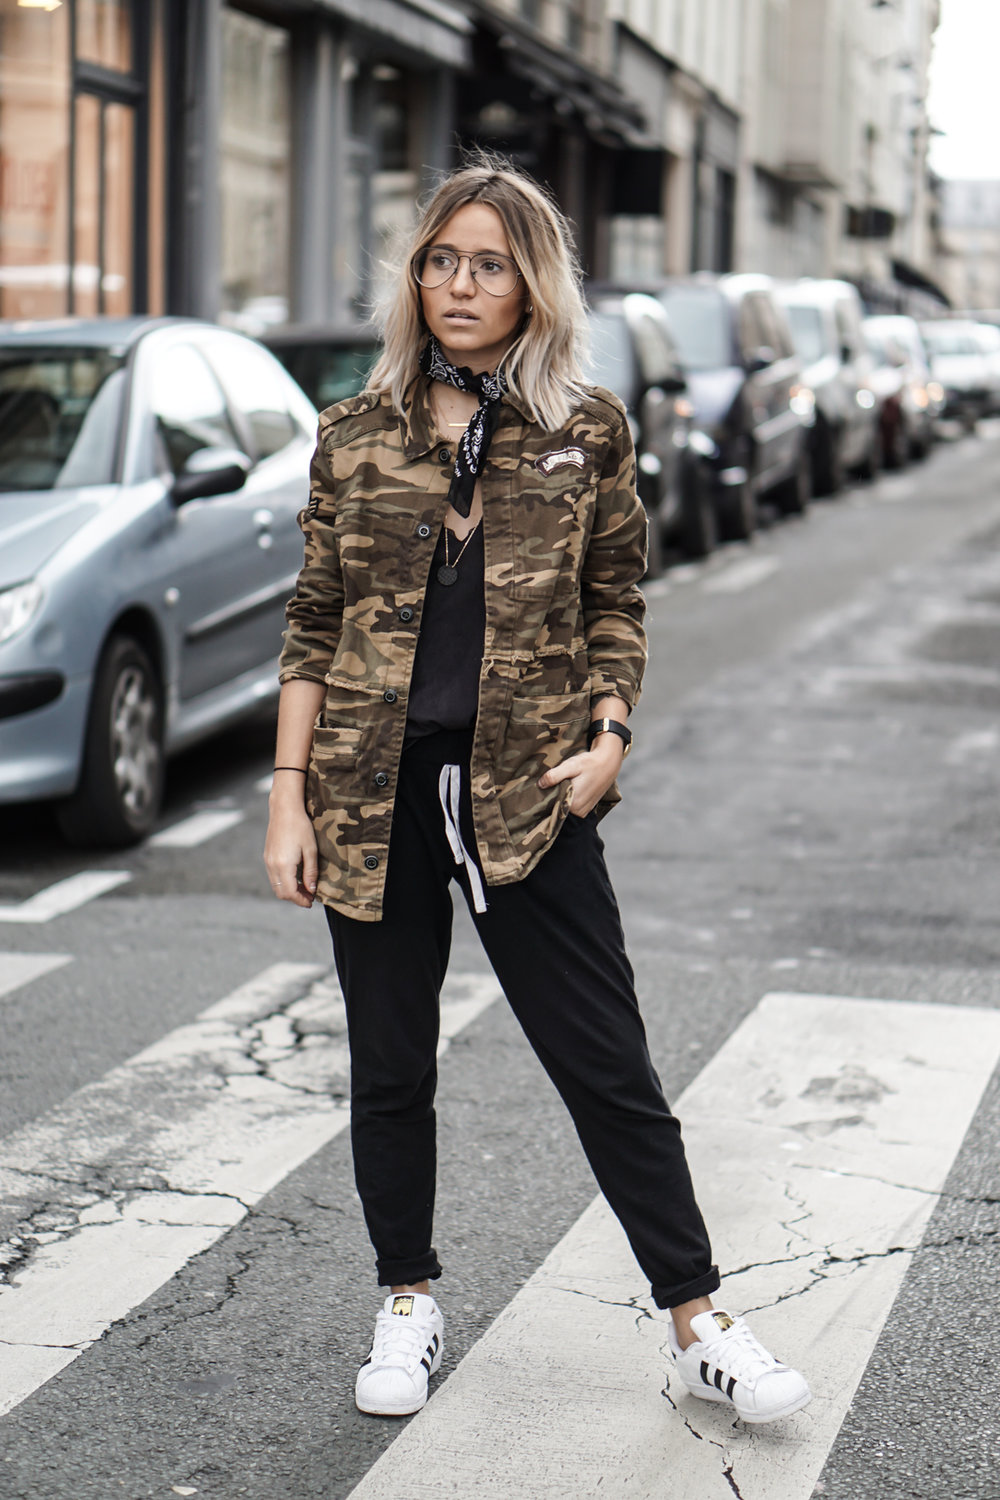 Because she Camo! She's French... bien sur! Image via Noholita